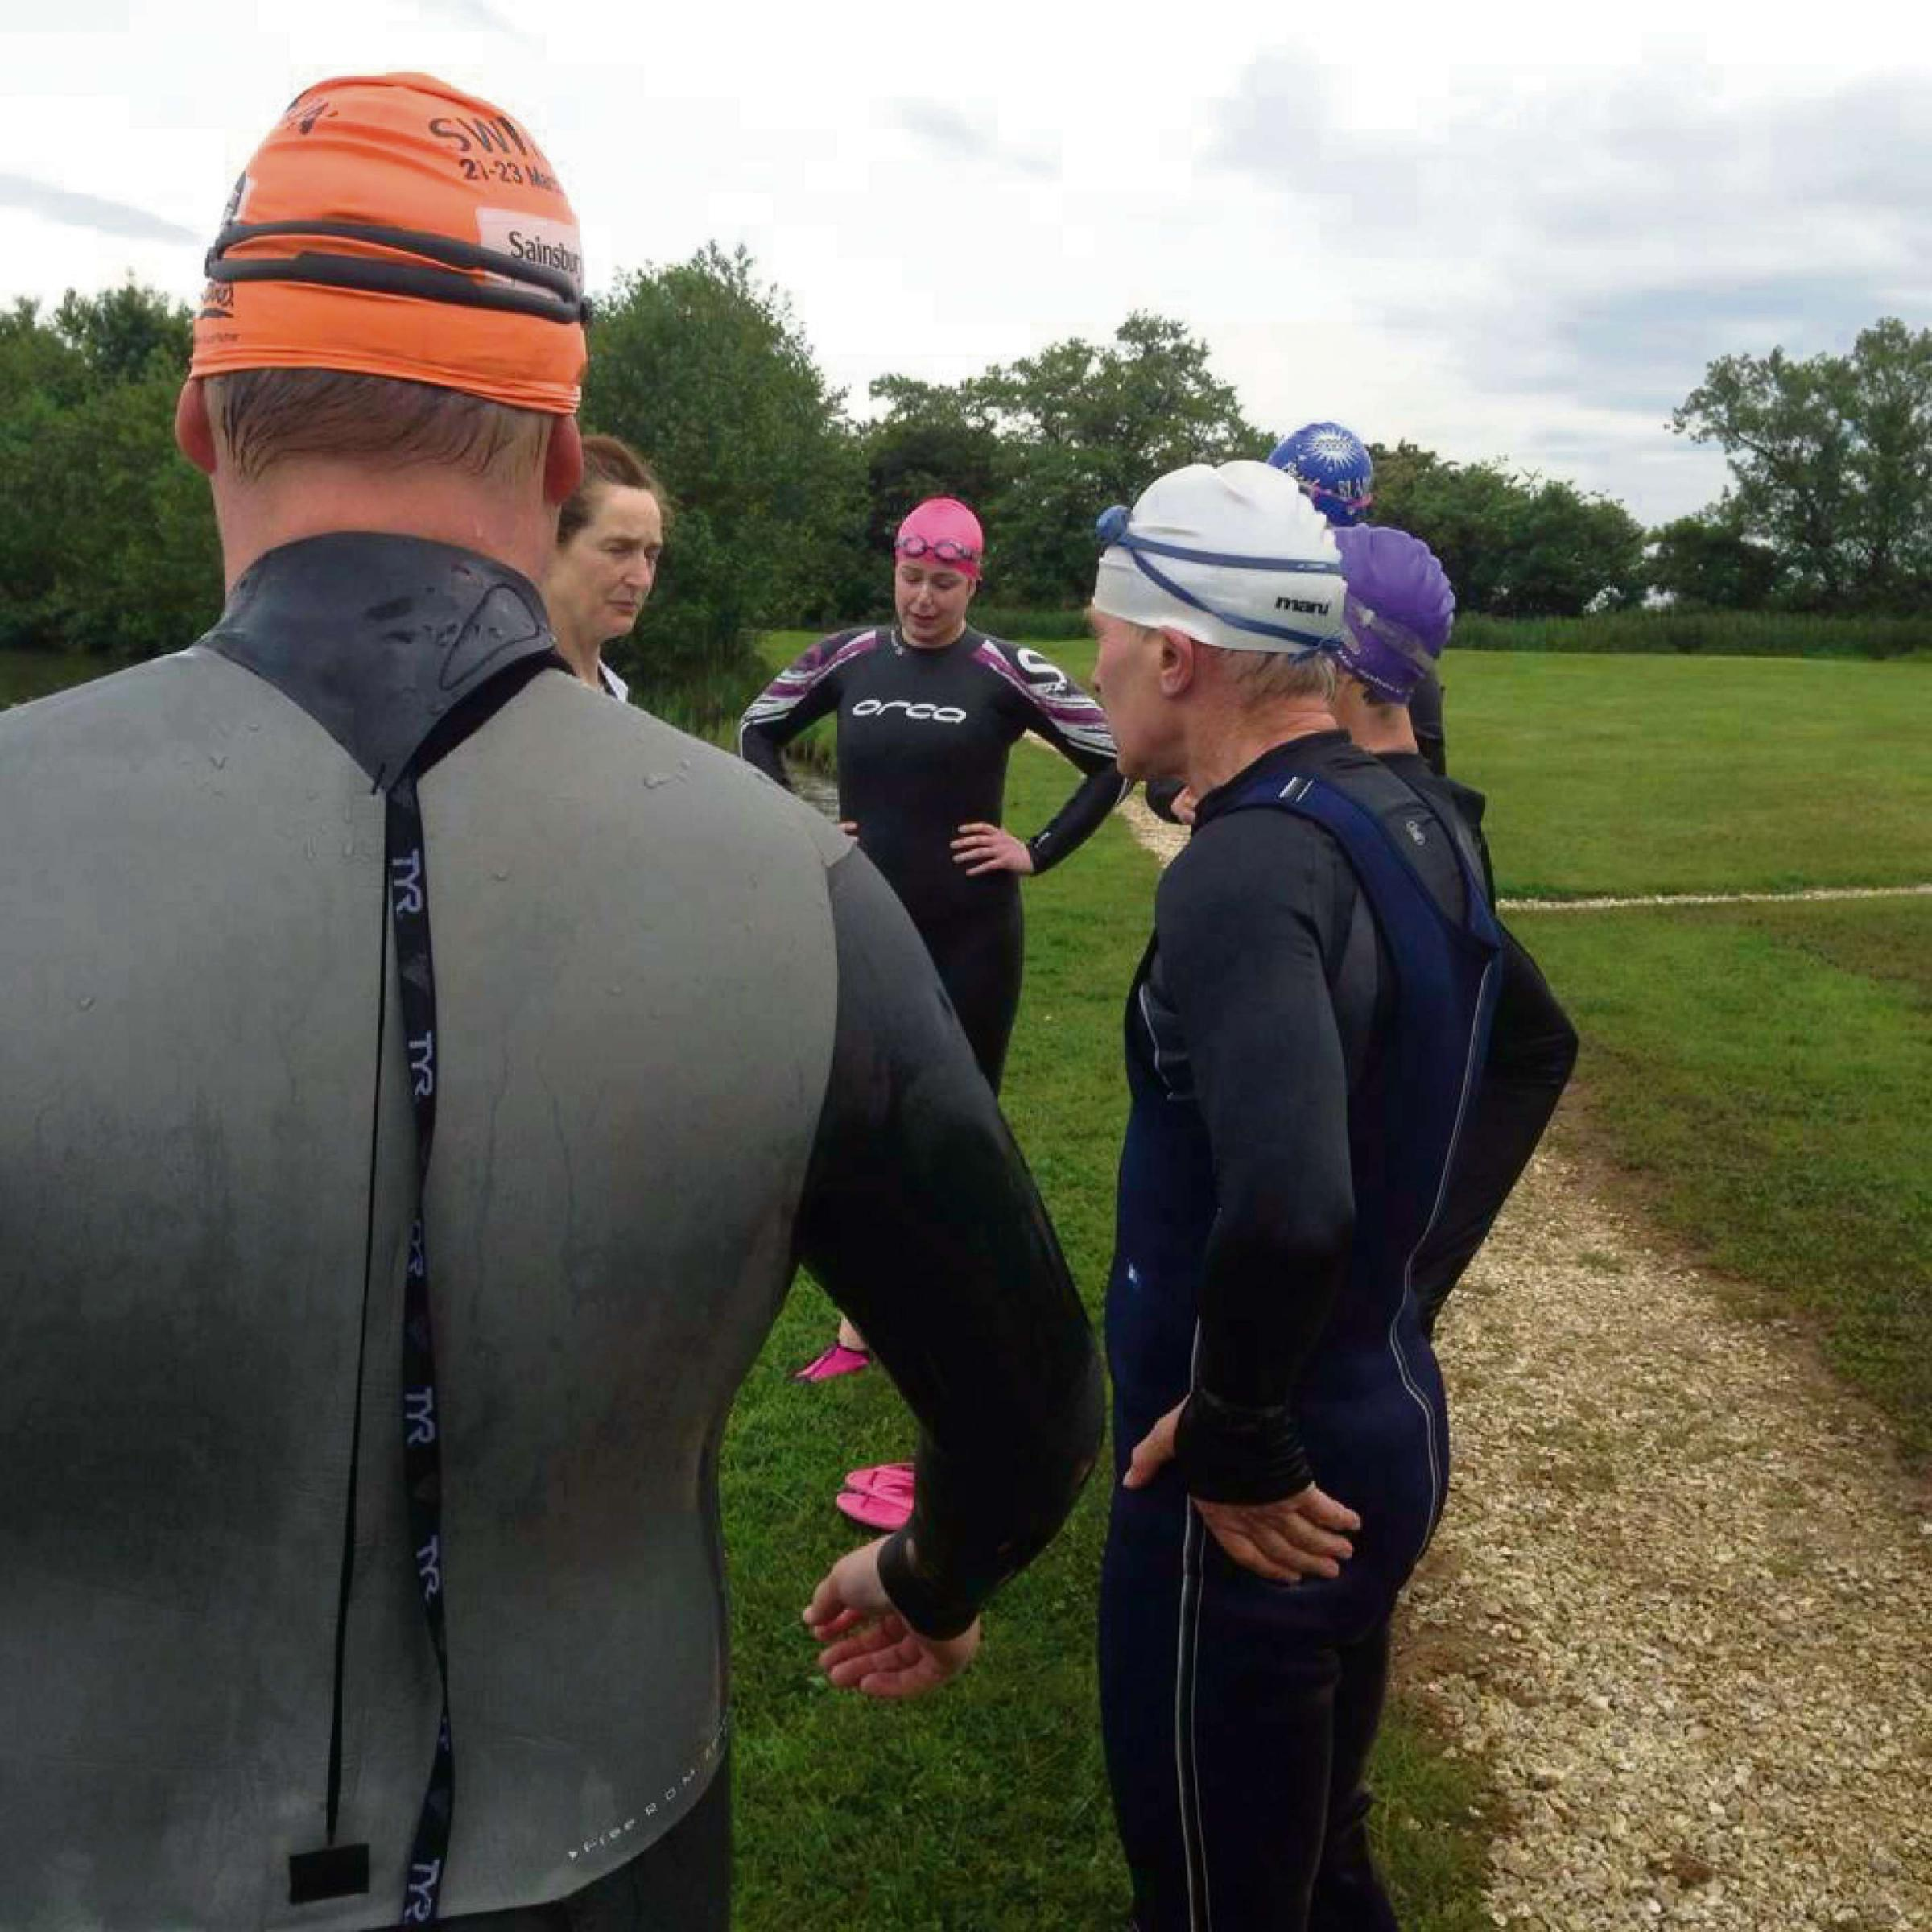 Members of the recently-formed Selby-based Yorkshire Vikings triathlon squad